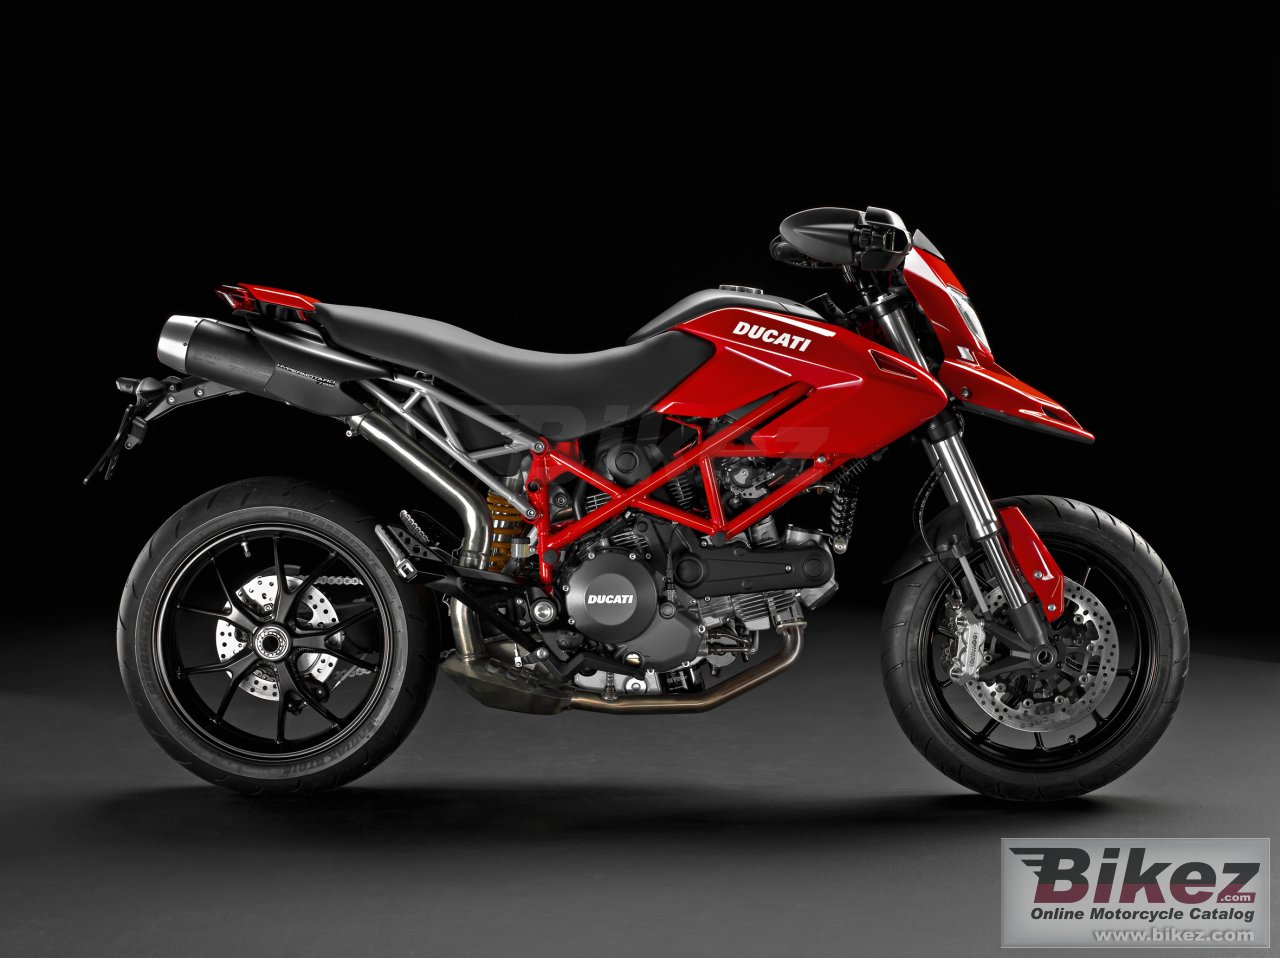 Big Ducati hypermotard 796 picture and wallpaper from Bikez.com